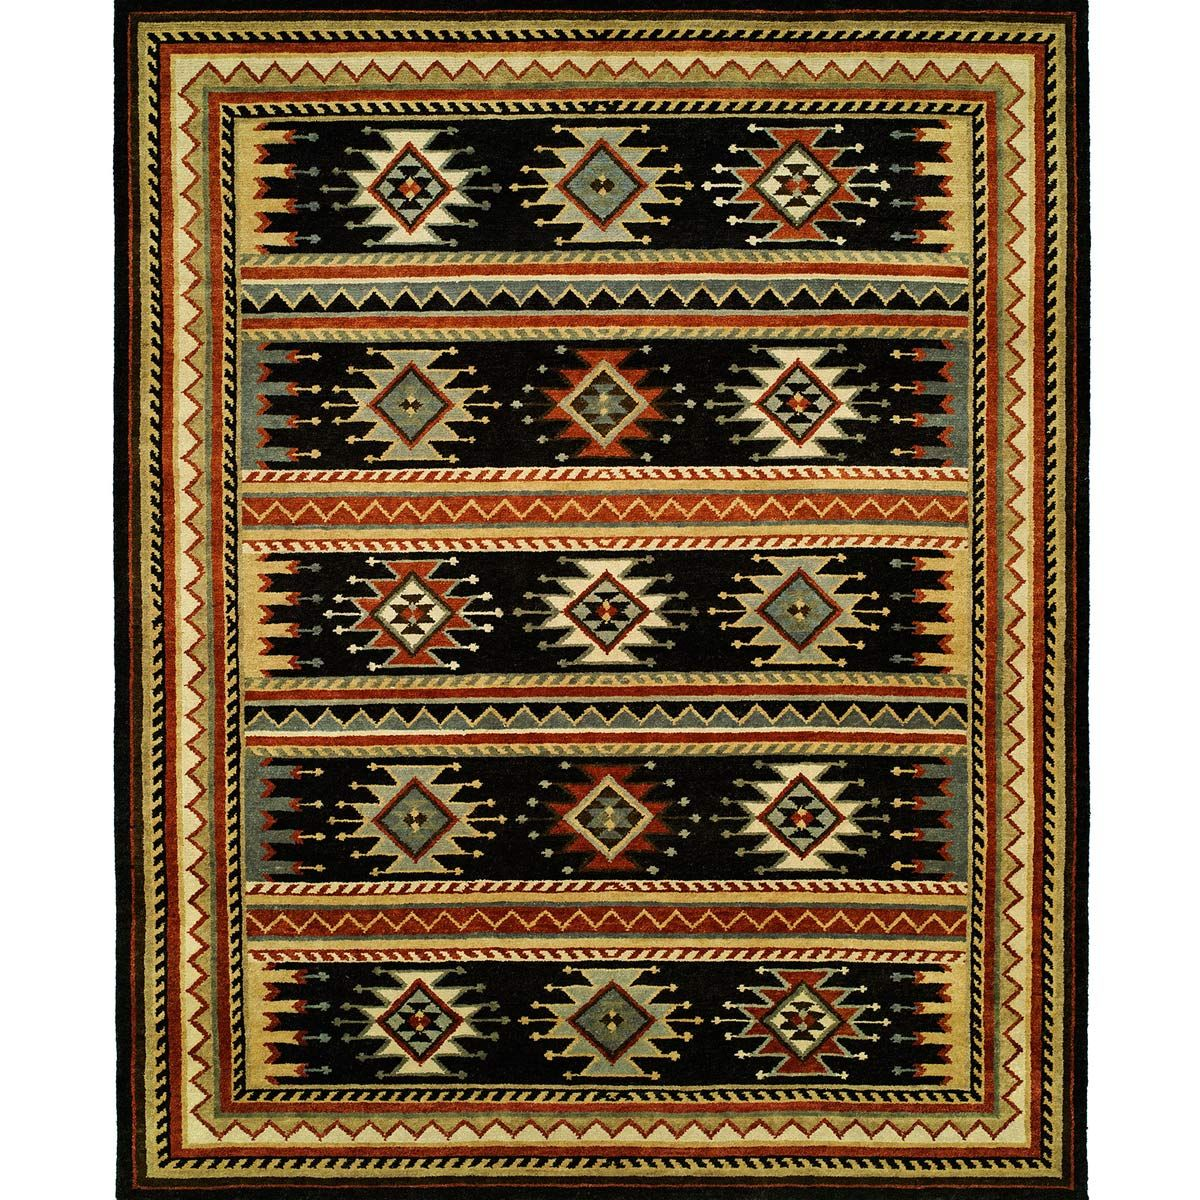 Socorro Diamonds Rug - 2 x 3